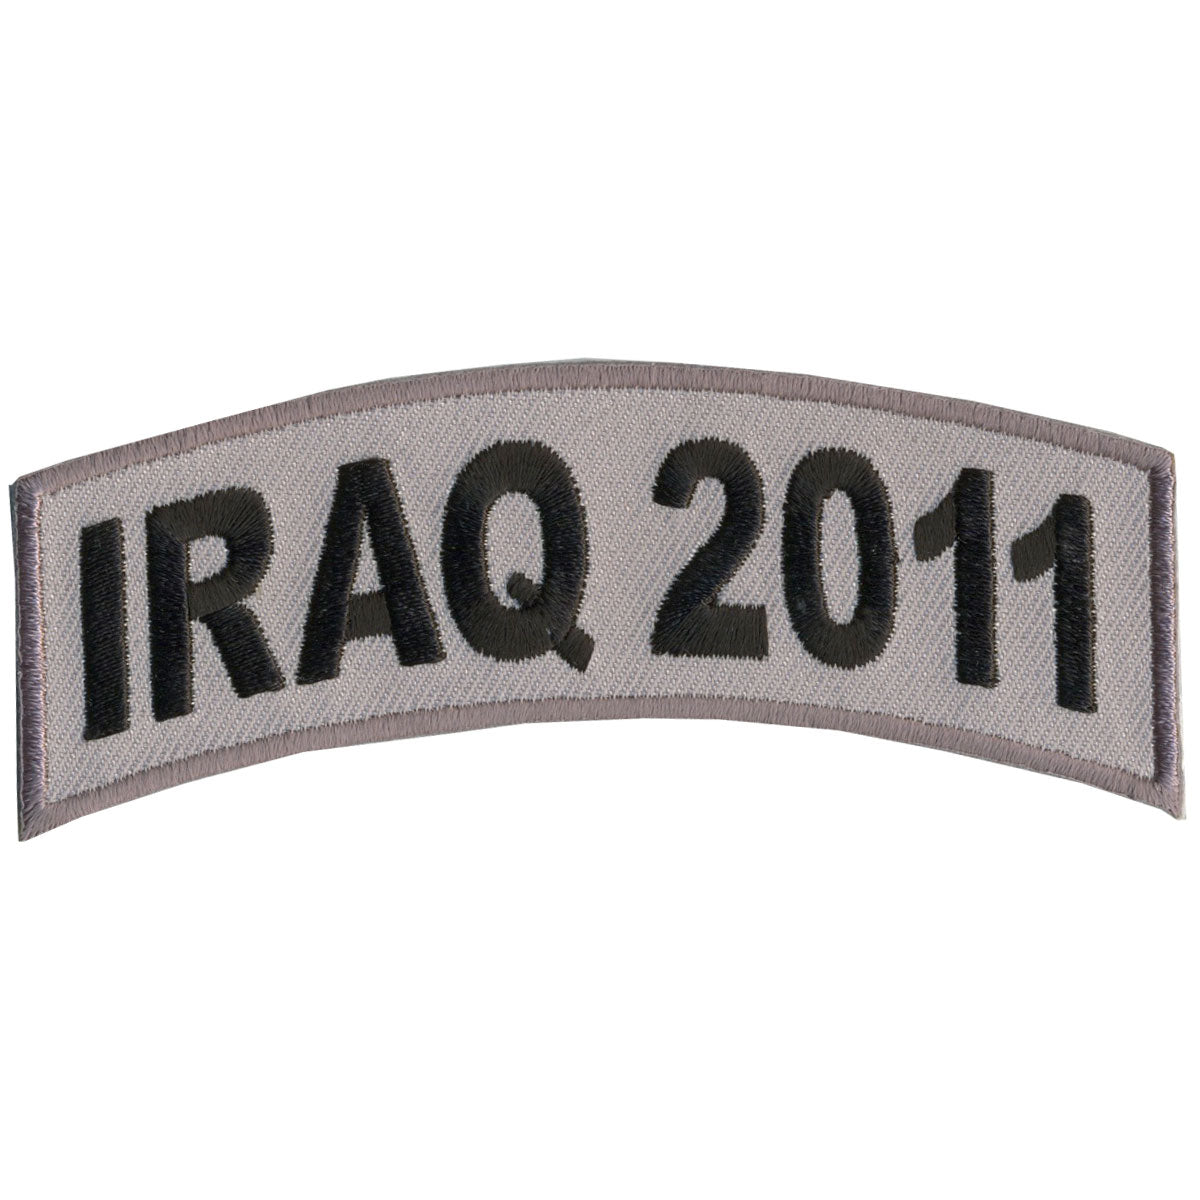 "Hot Leathers Iraq 2011 4"" x 1"" Patch"